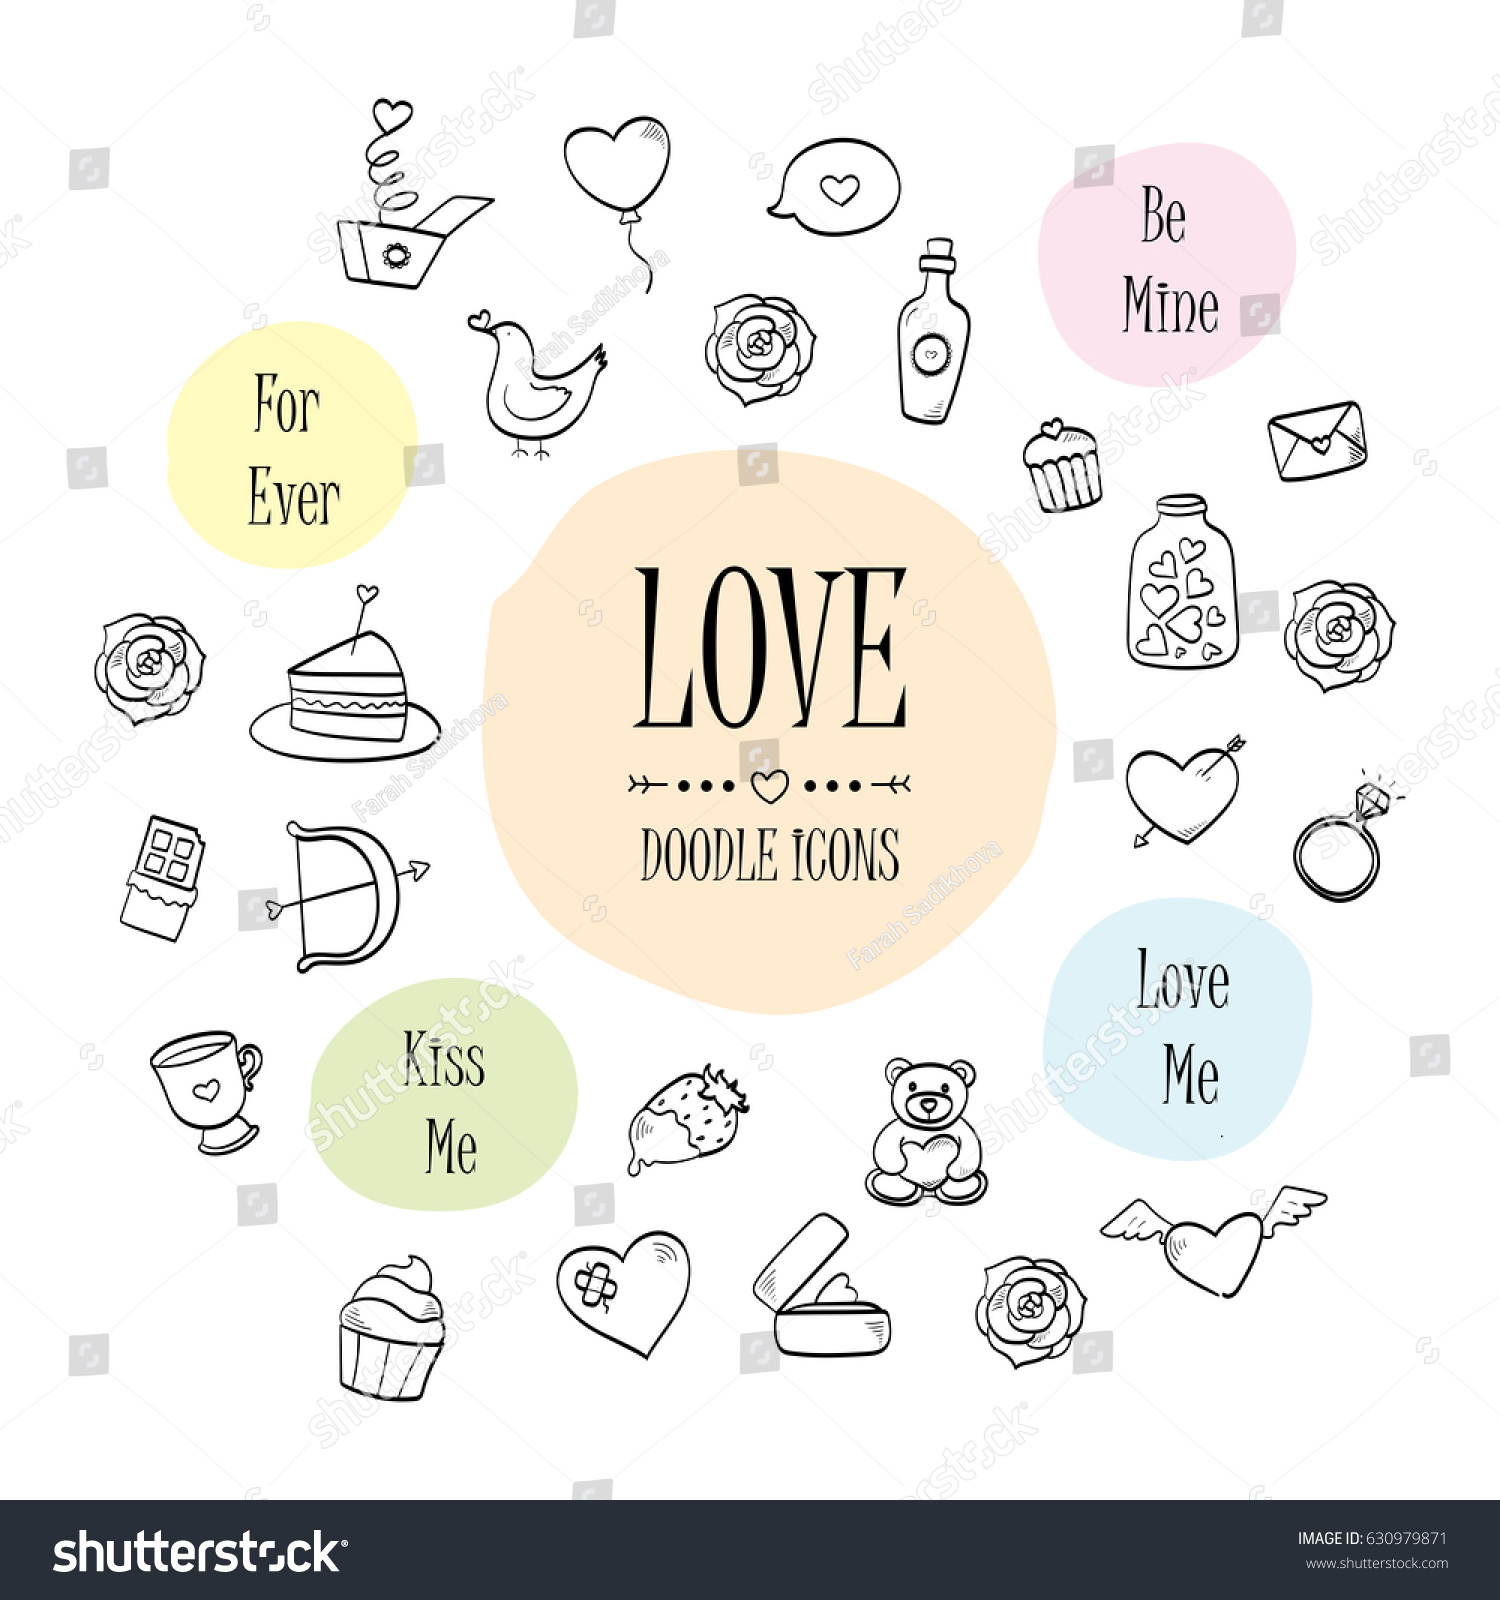 Love Romance Vintage Hand Drawn Doodle Stock Vector HD Royalty Free